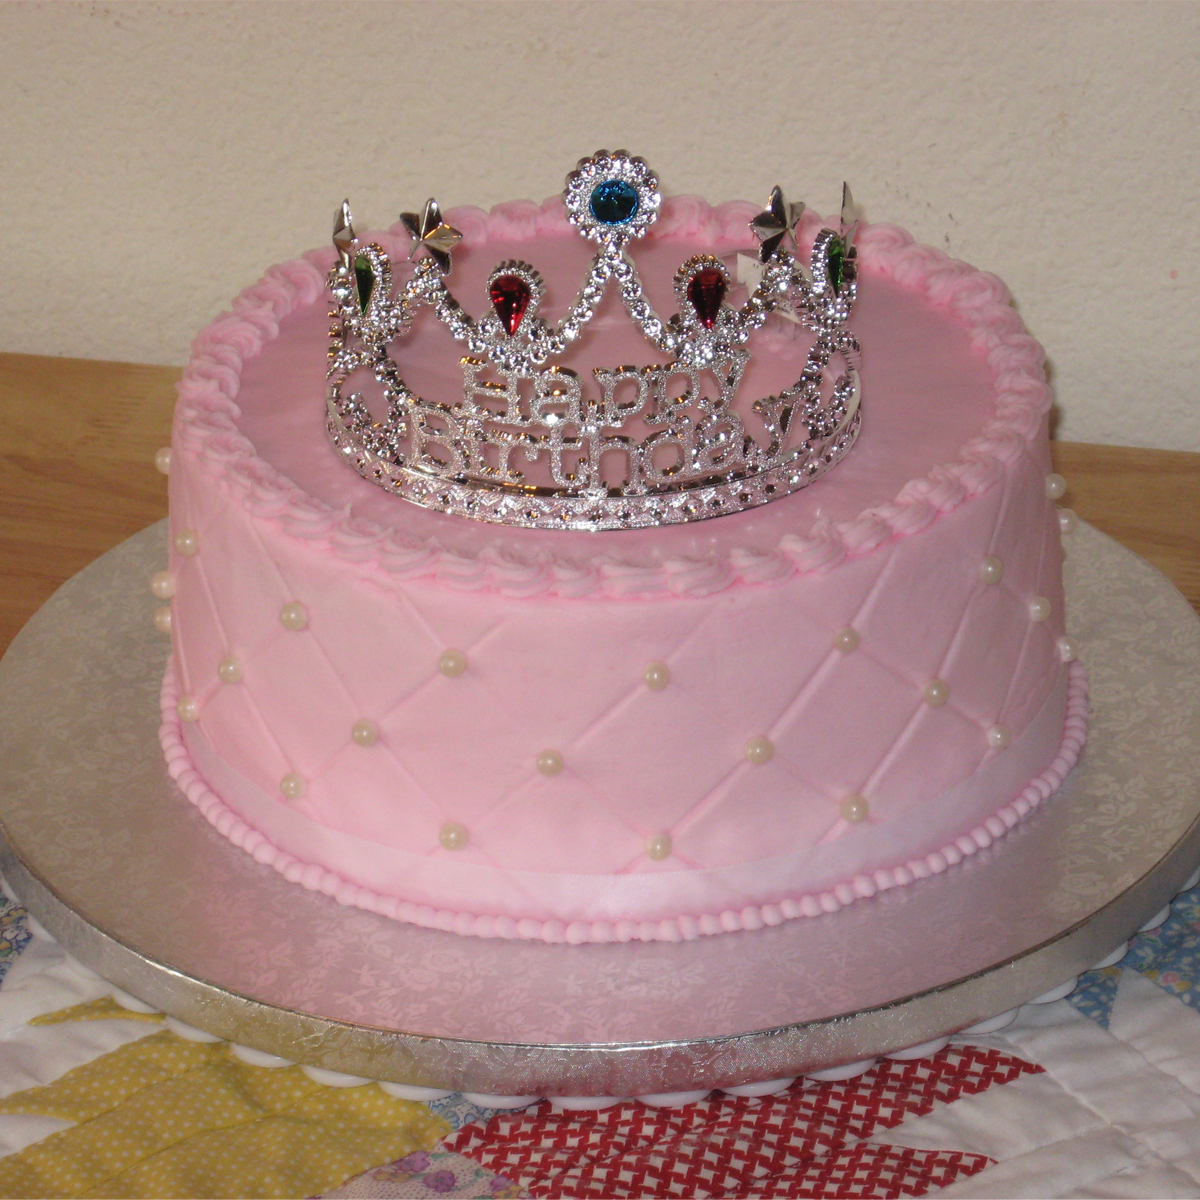 Princess Crown Cake Pictures : All Things Sweet: Princess Crown Cake